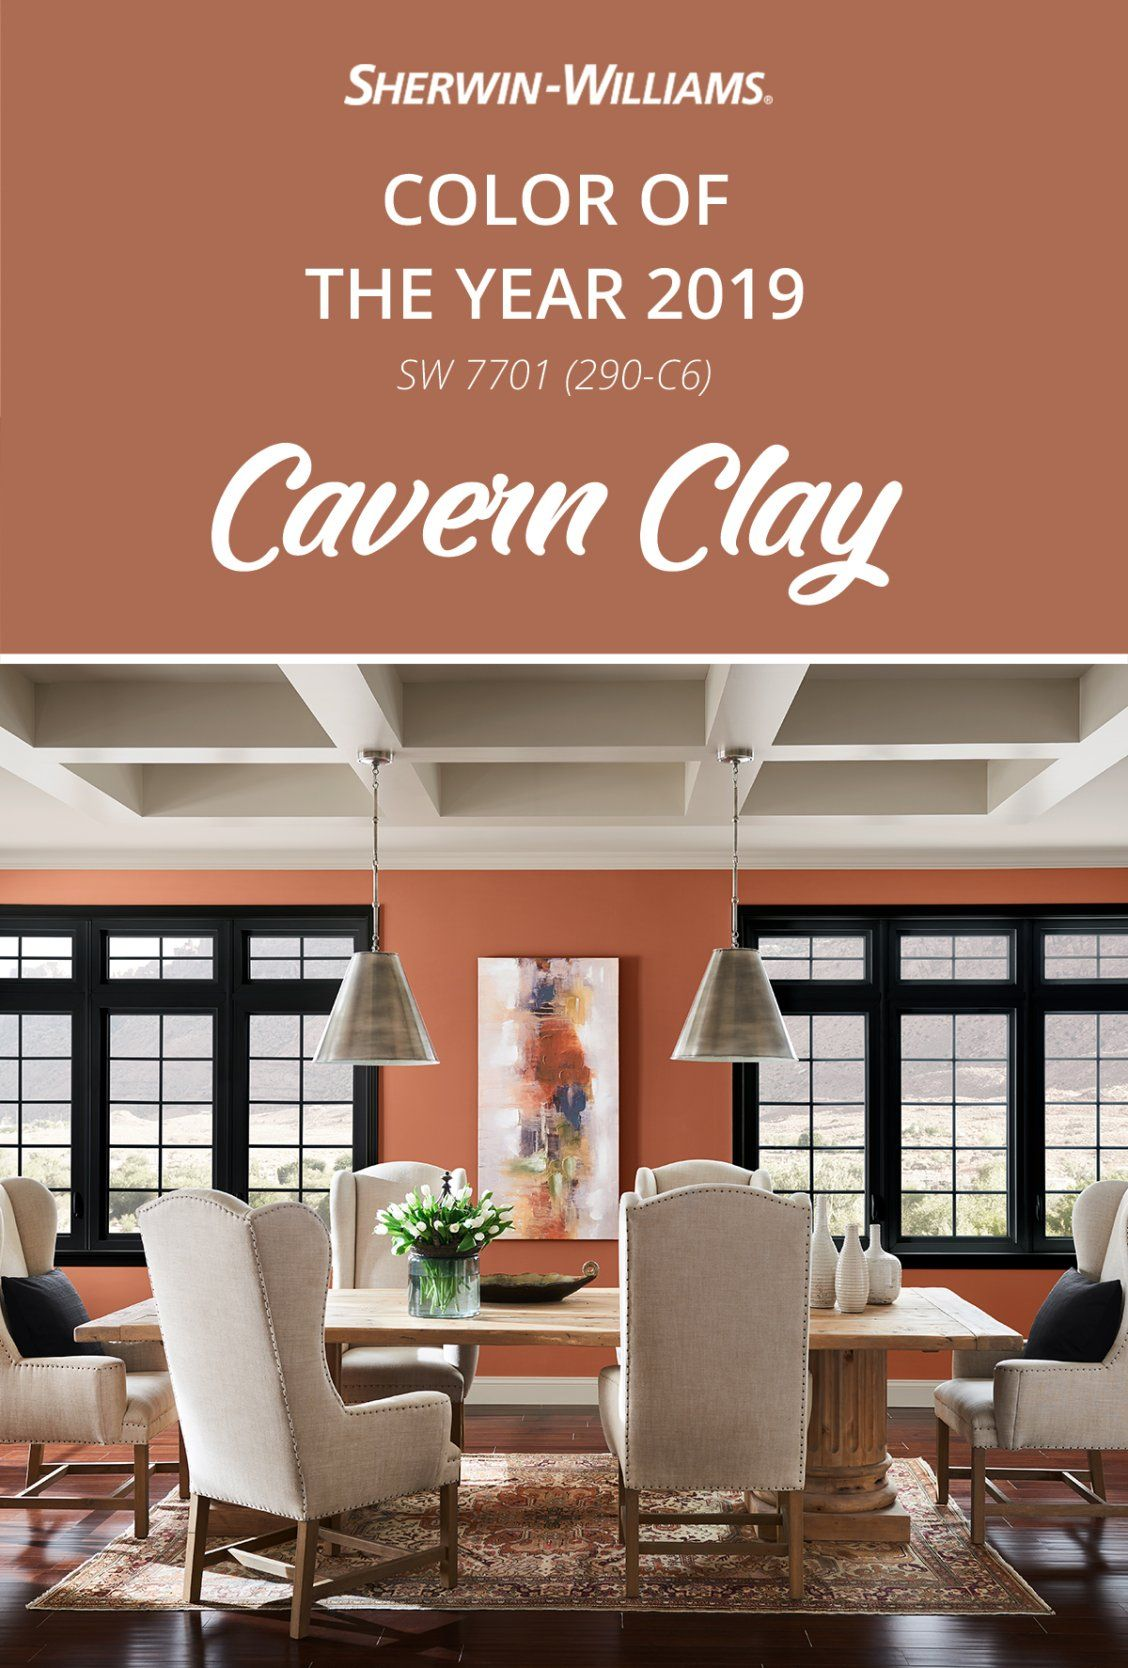 Modern décor pairs perfectly with Cavern Clay SW 7701, the